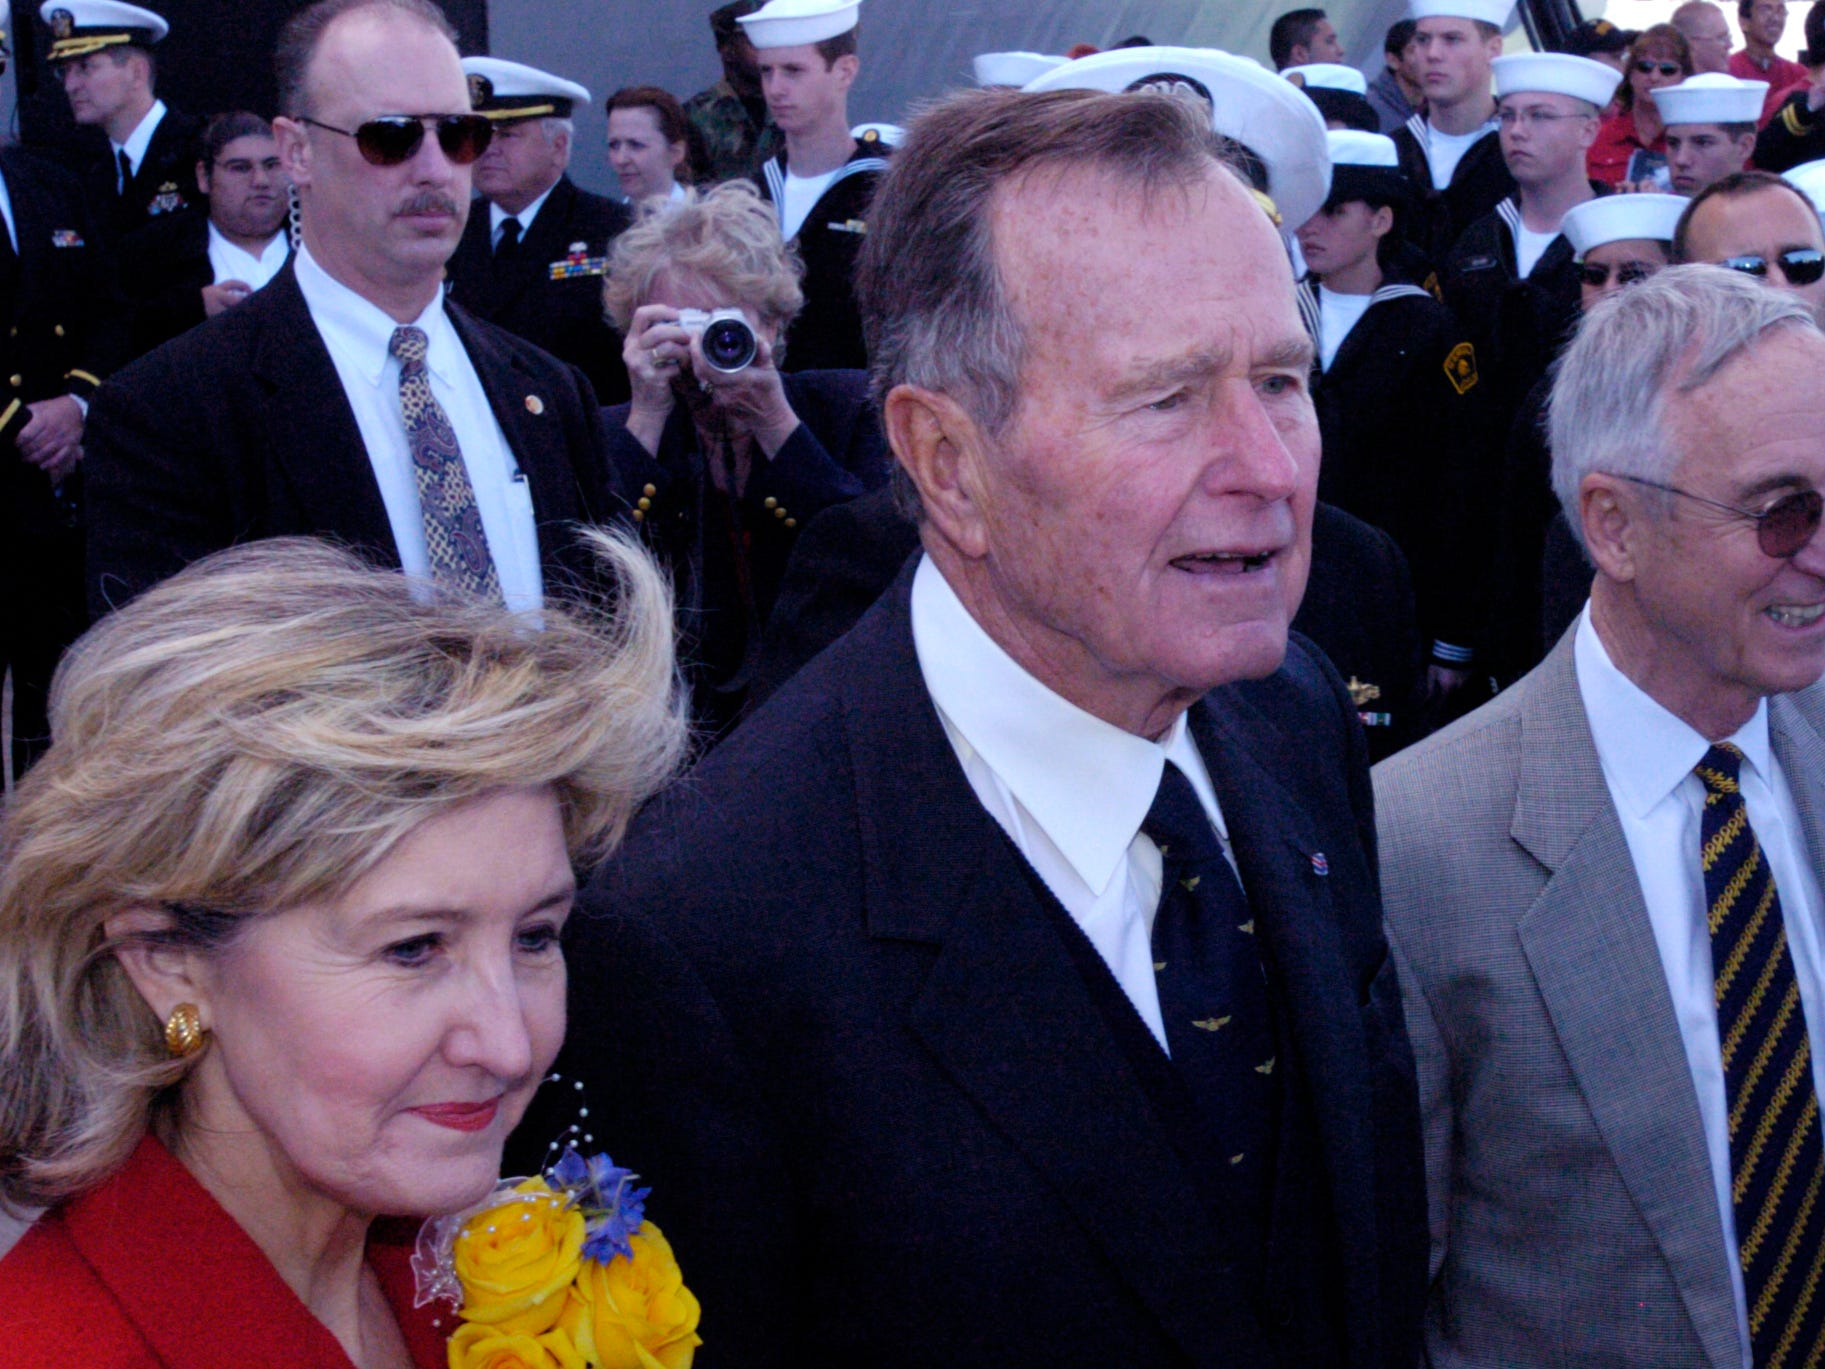 Former President George H.W. Bush (center) and U.S. Sen. Kay Bailey Hutchison (right) participate in the commissioning ceremony of the USS San Antonio at Naval Station Ingleside in January 2006. Former President Bush gave the principal address at the ceremony.